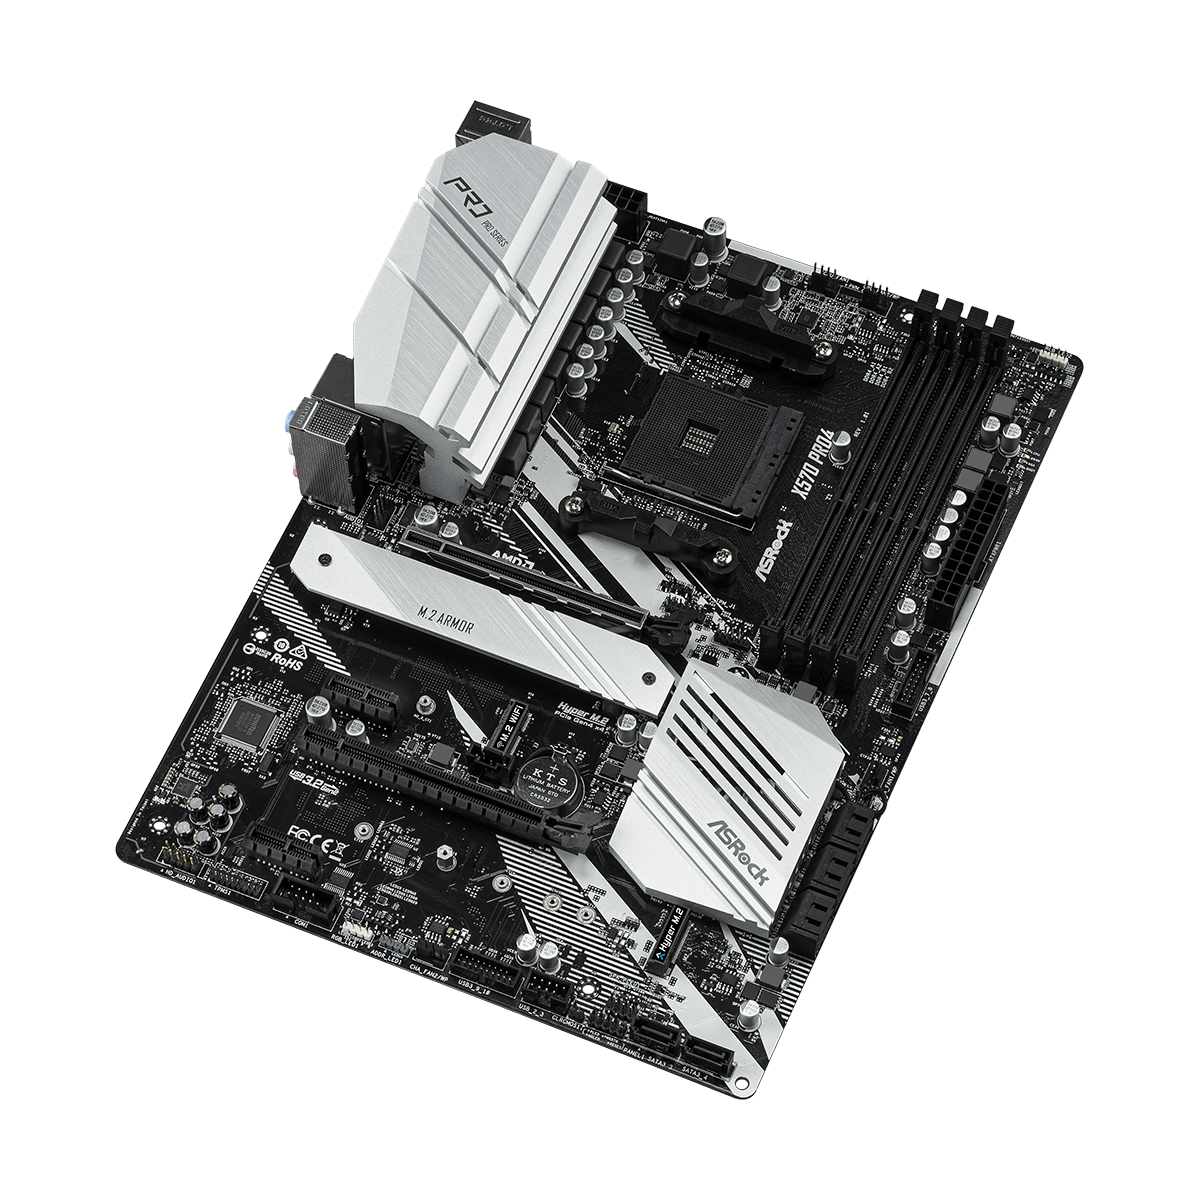 Placa Mãe Asrock X570 Pro4, Chipset X570, AMD AM4, ATX, DDR4